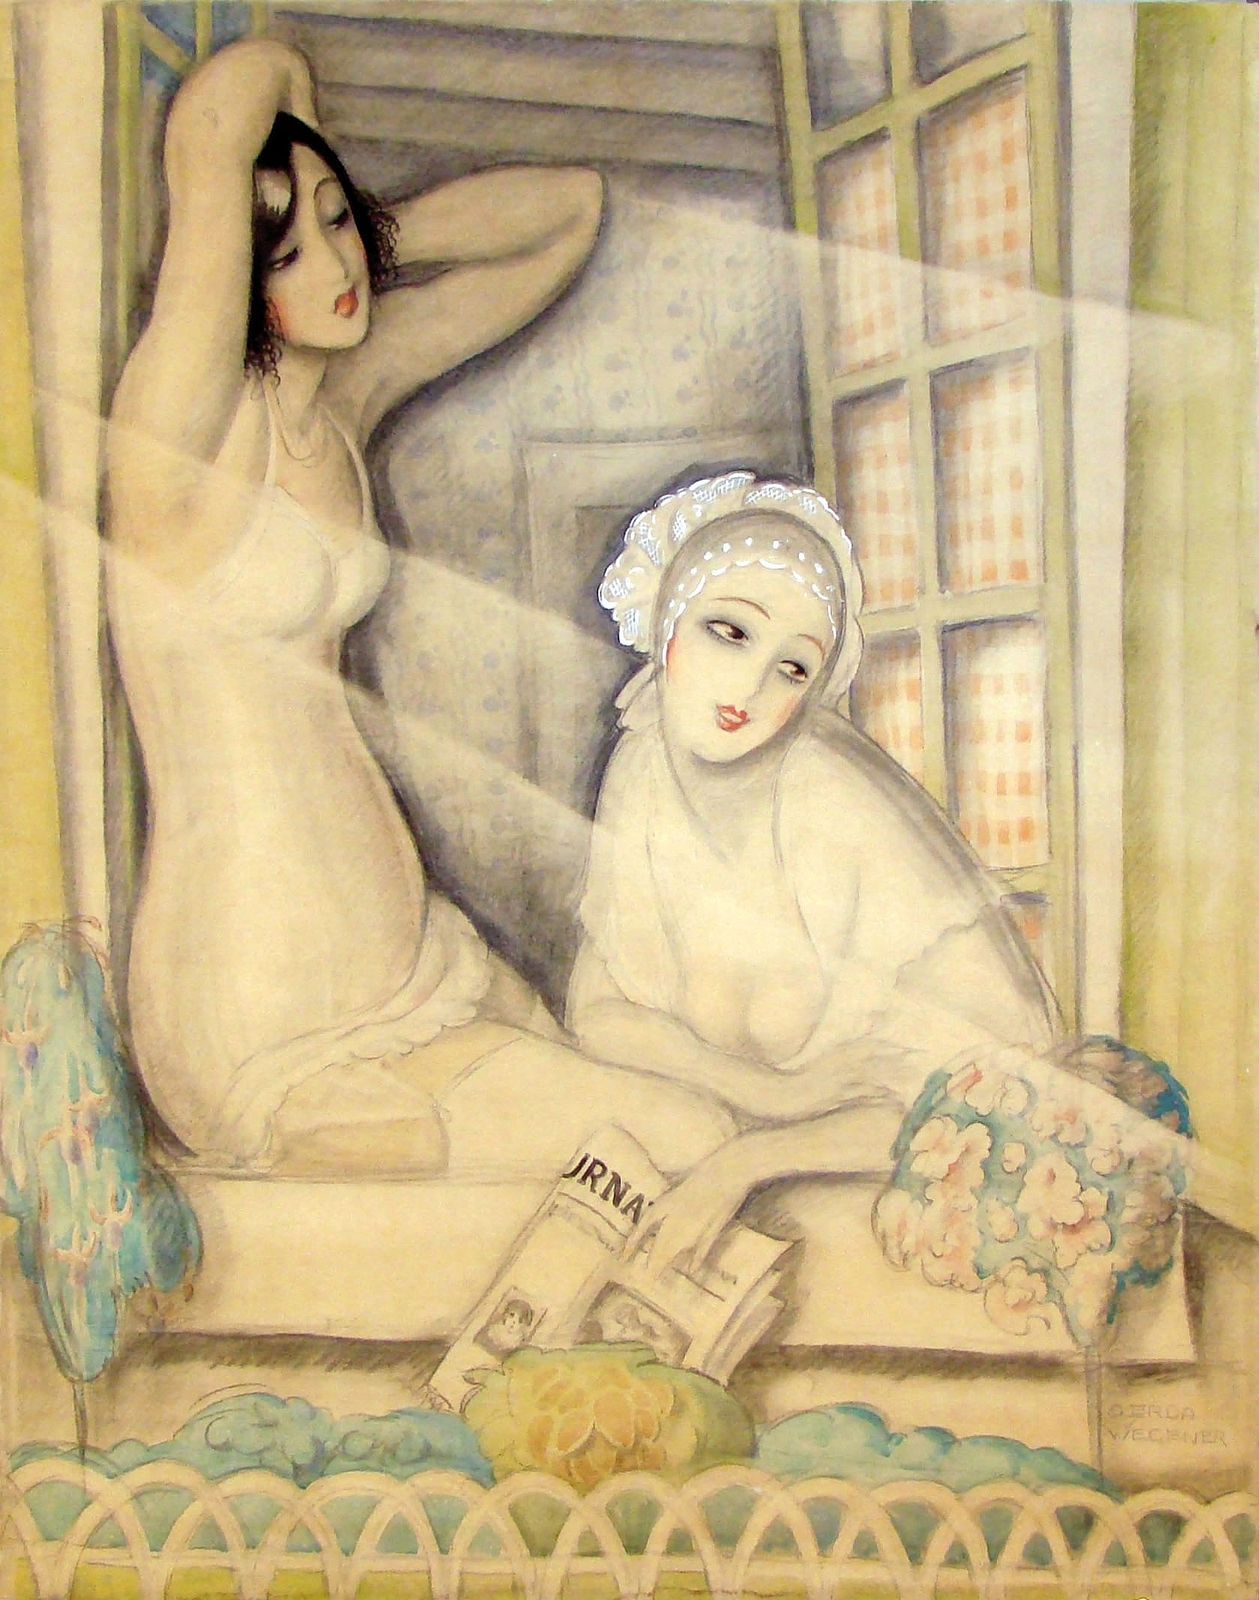 1920 (ок)_Две женщины в окне (Two Women in a Window)_90.8 х 72.7_бумага. акварель, гуашь, карандаш  мел_Частное собрание.jpg